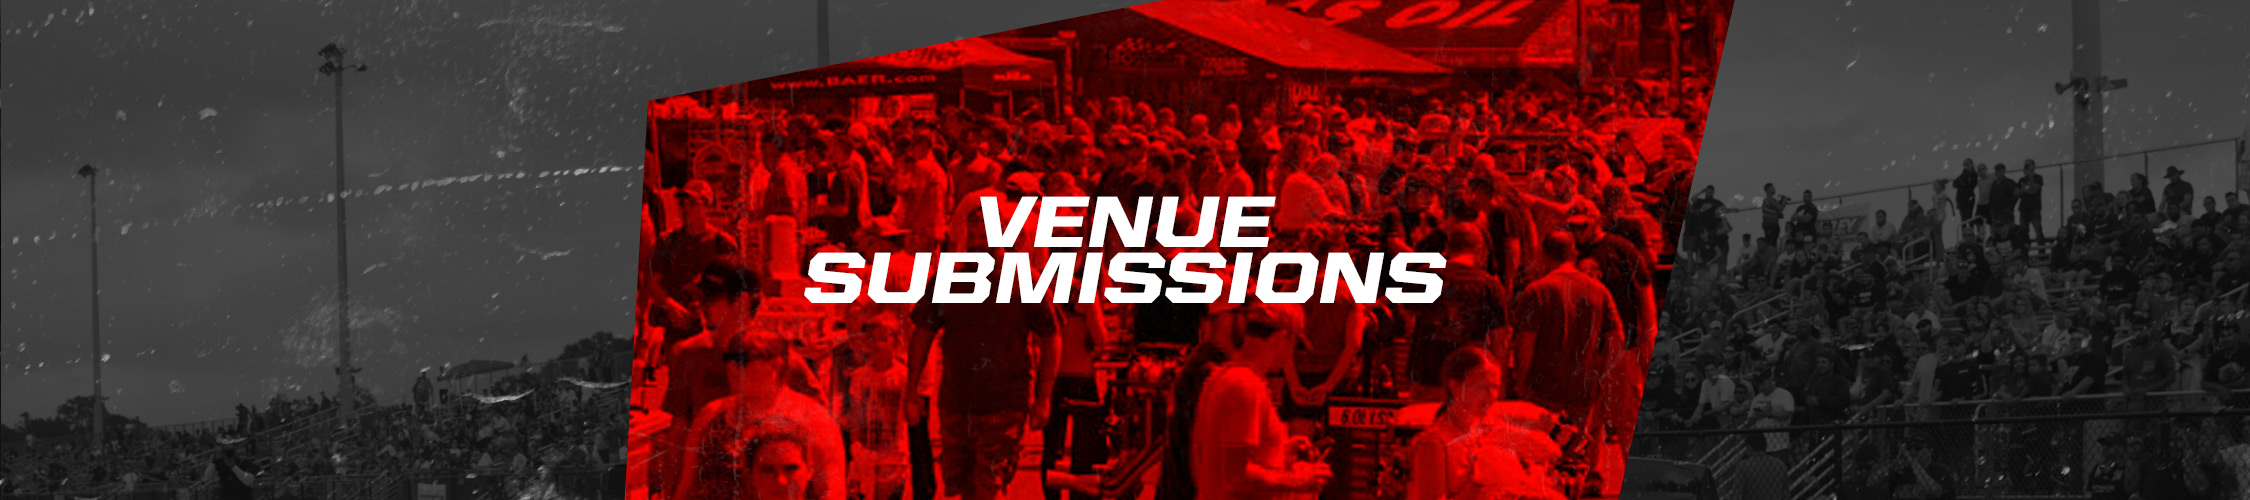 Venue Submissions